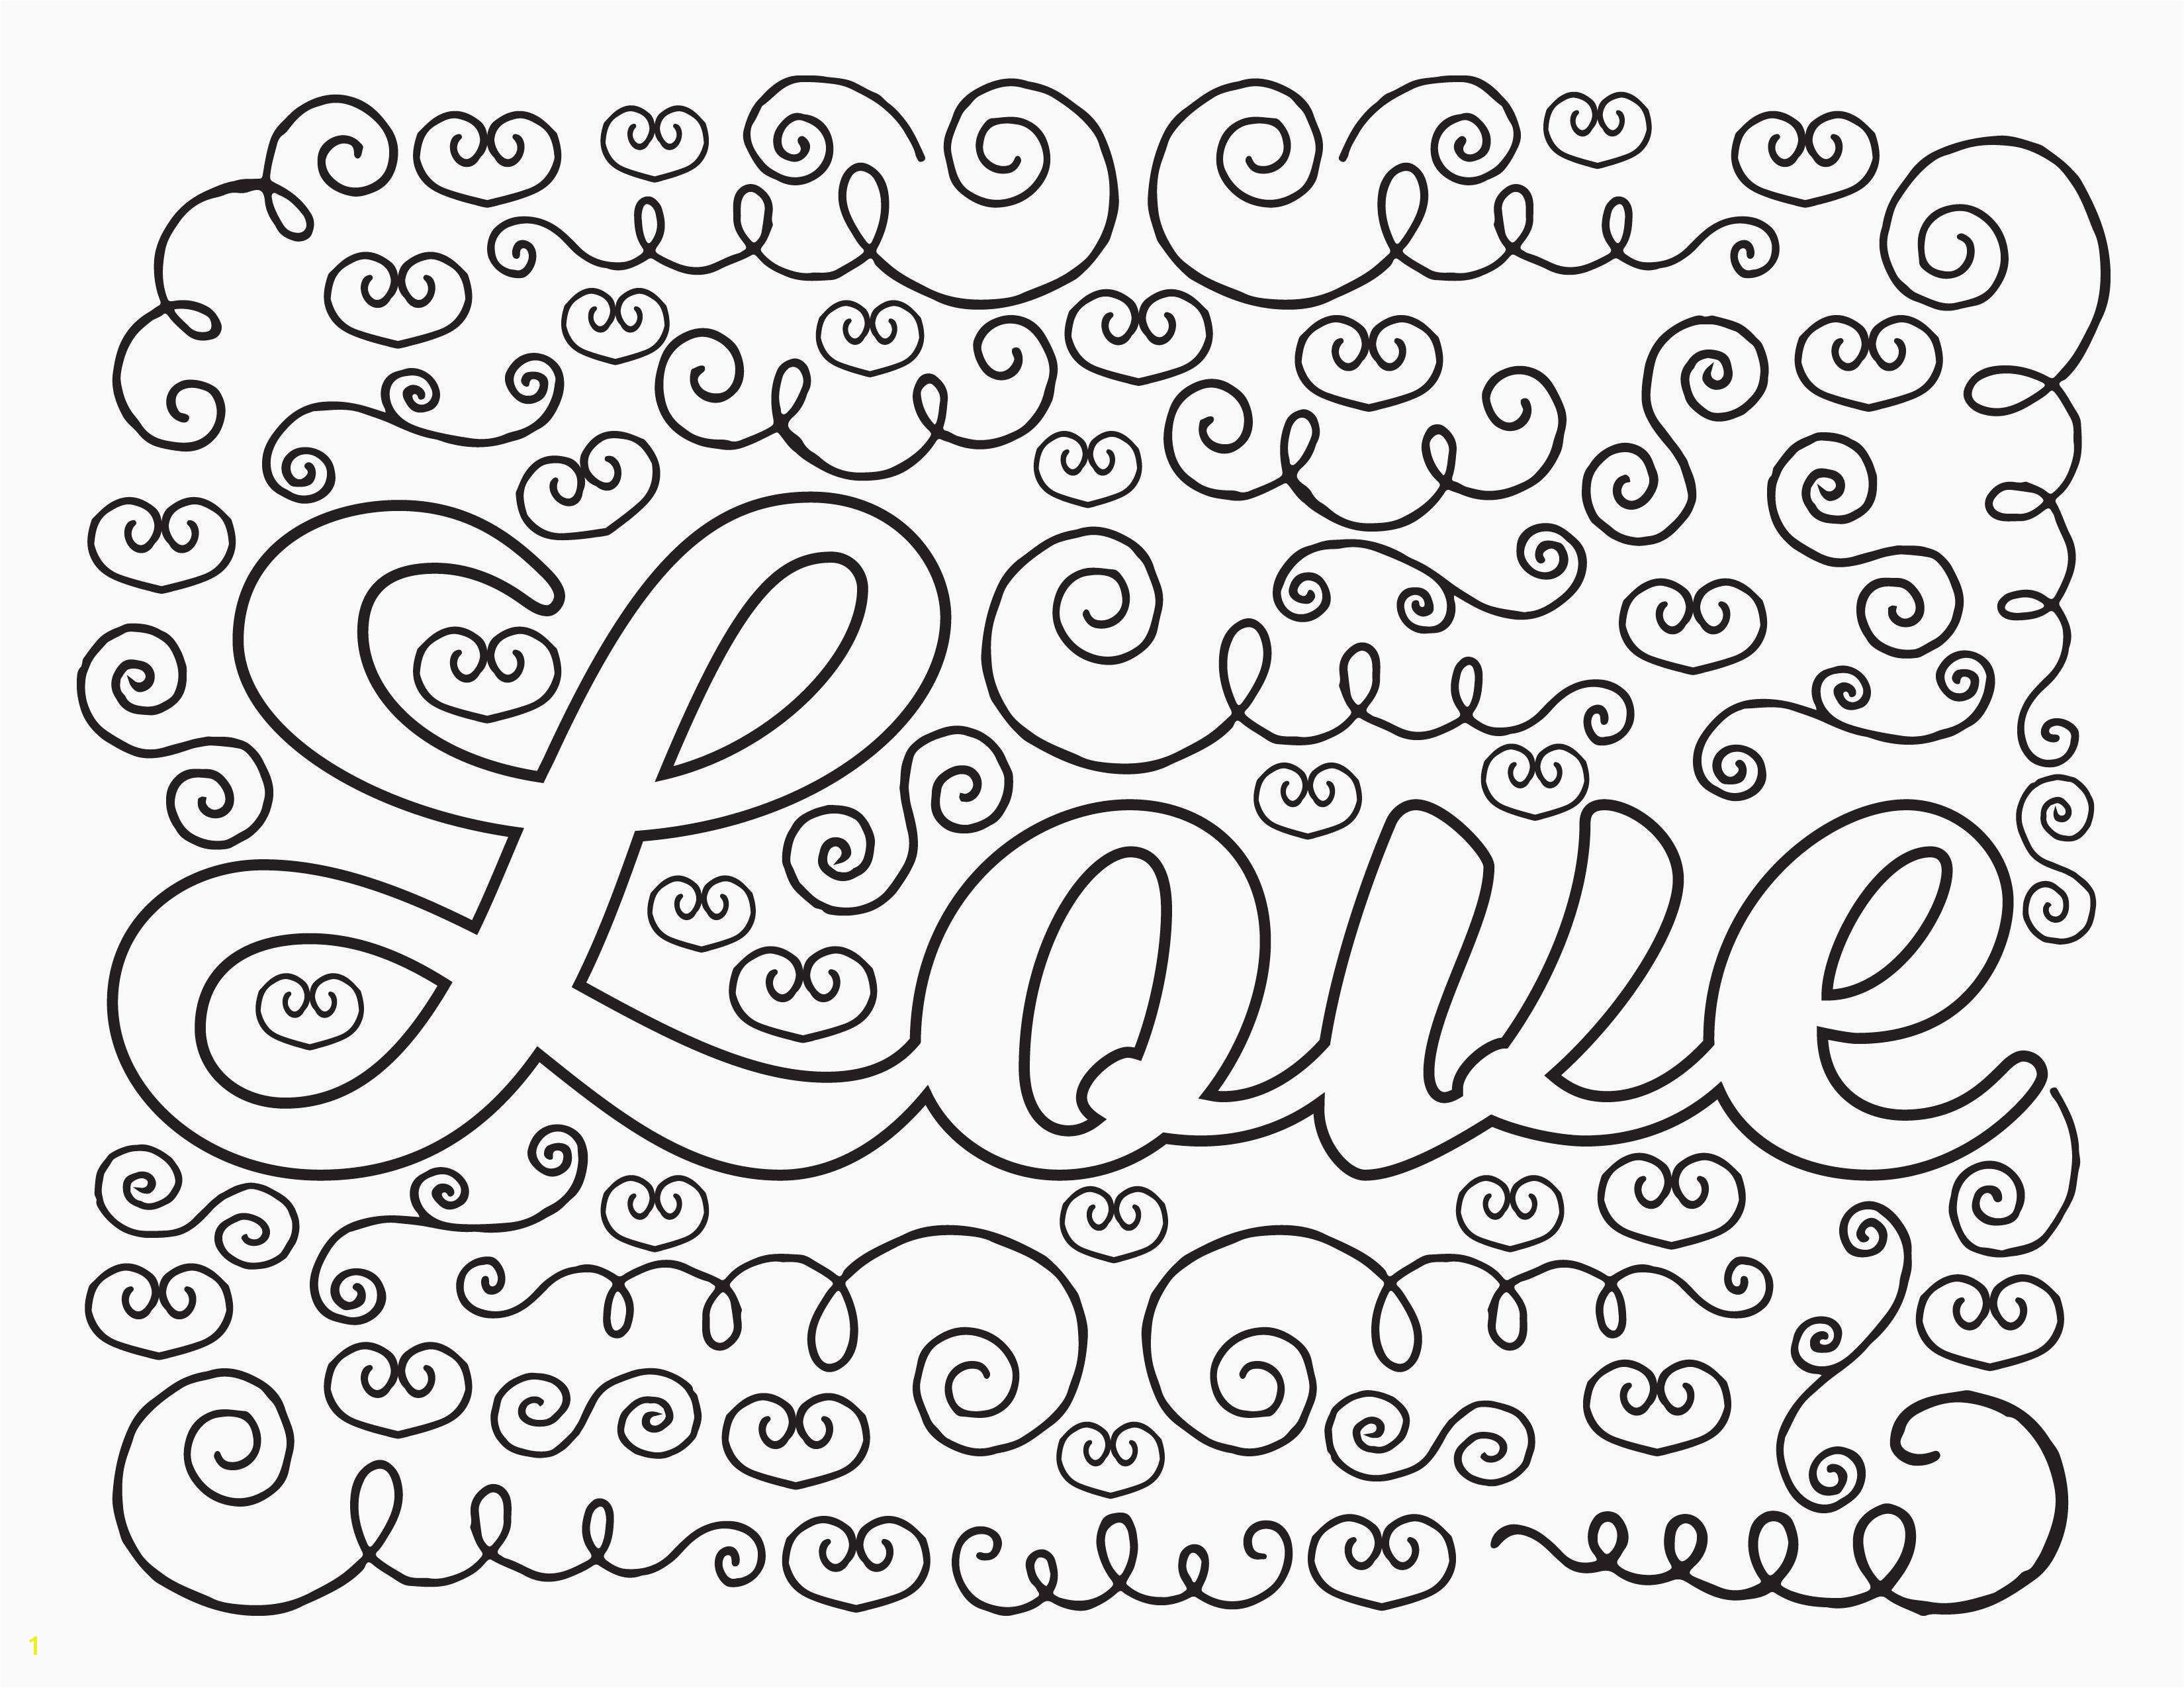 Disney Printable Coloring Pages Pdf Stained Glass Disney Princess Free Coloring Sheets Free Printable